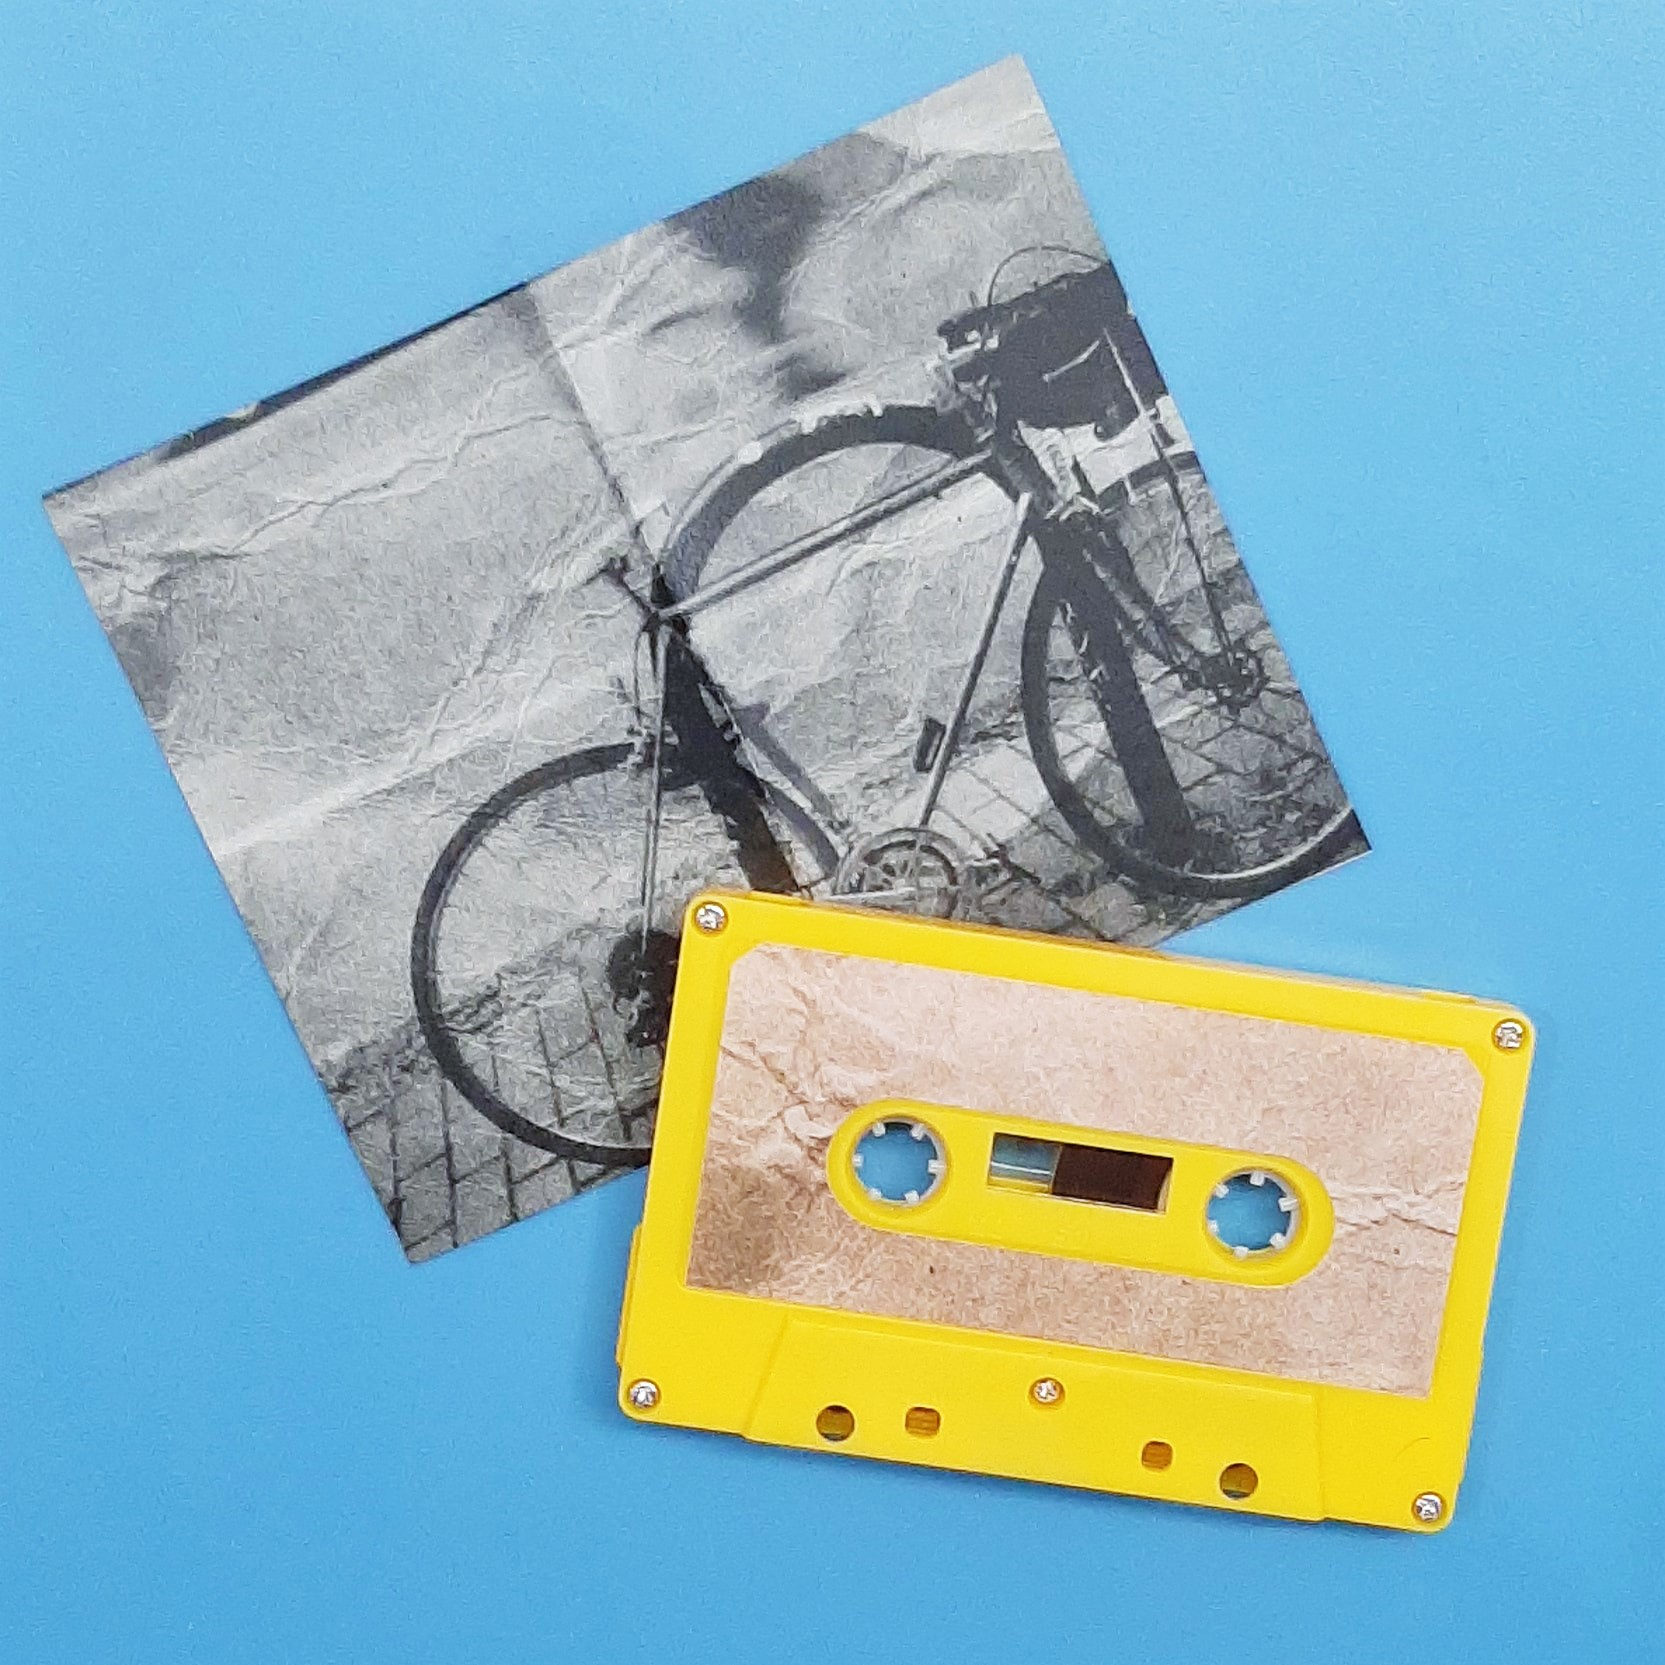 You Could Be a Cop - Collected Discography (Friend Club Records)